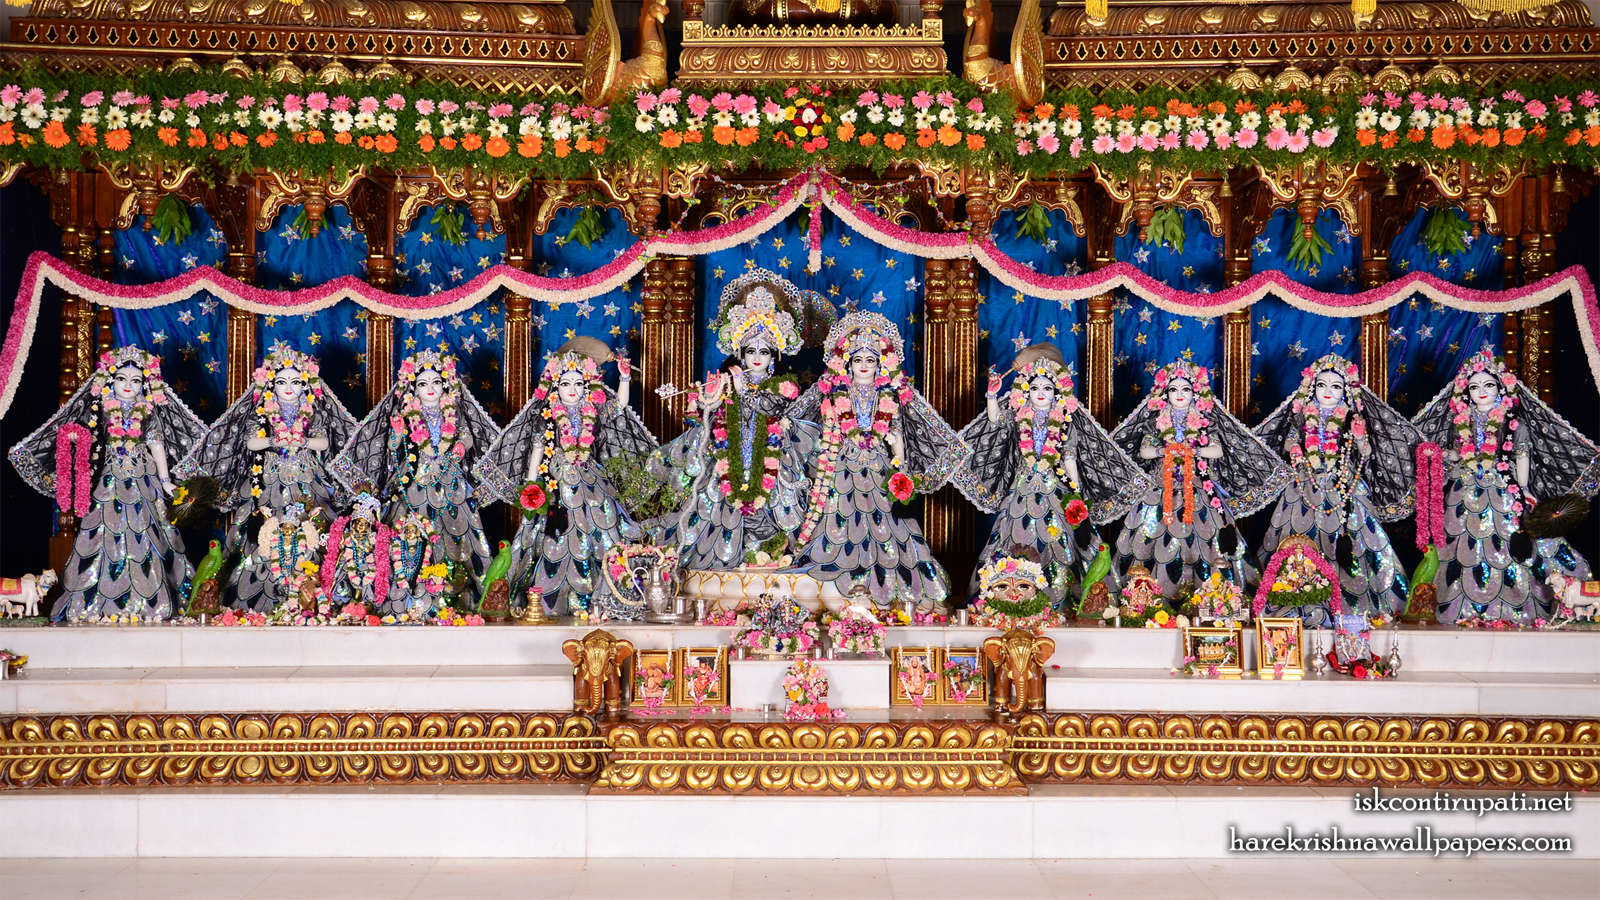 Sri Sri Radha Govinda with Ashtasakhi Wallpaper (004) Size 1600x900 Download